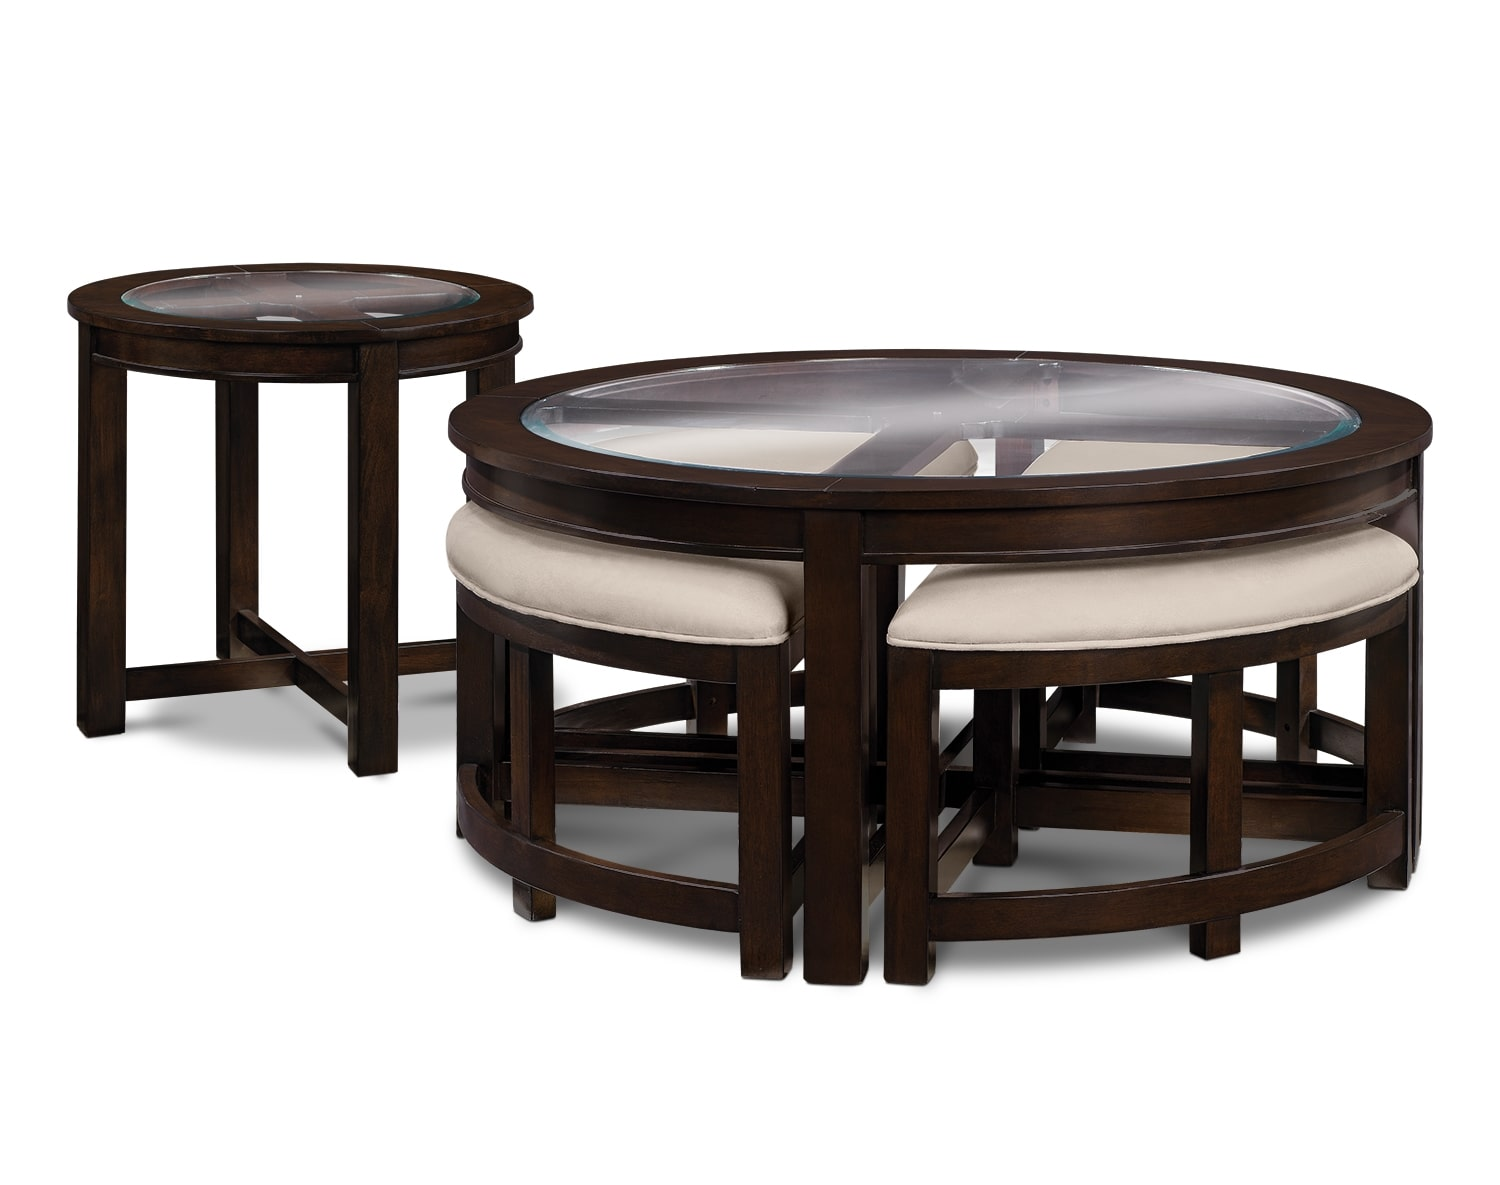 Accent and Occasional Furniture - The Intervale Collection - Cocktail Table w_ 4 Benches